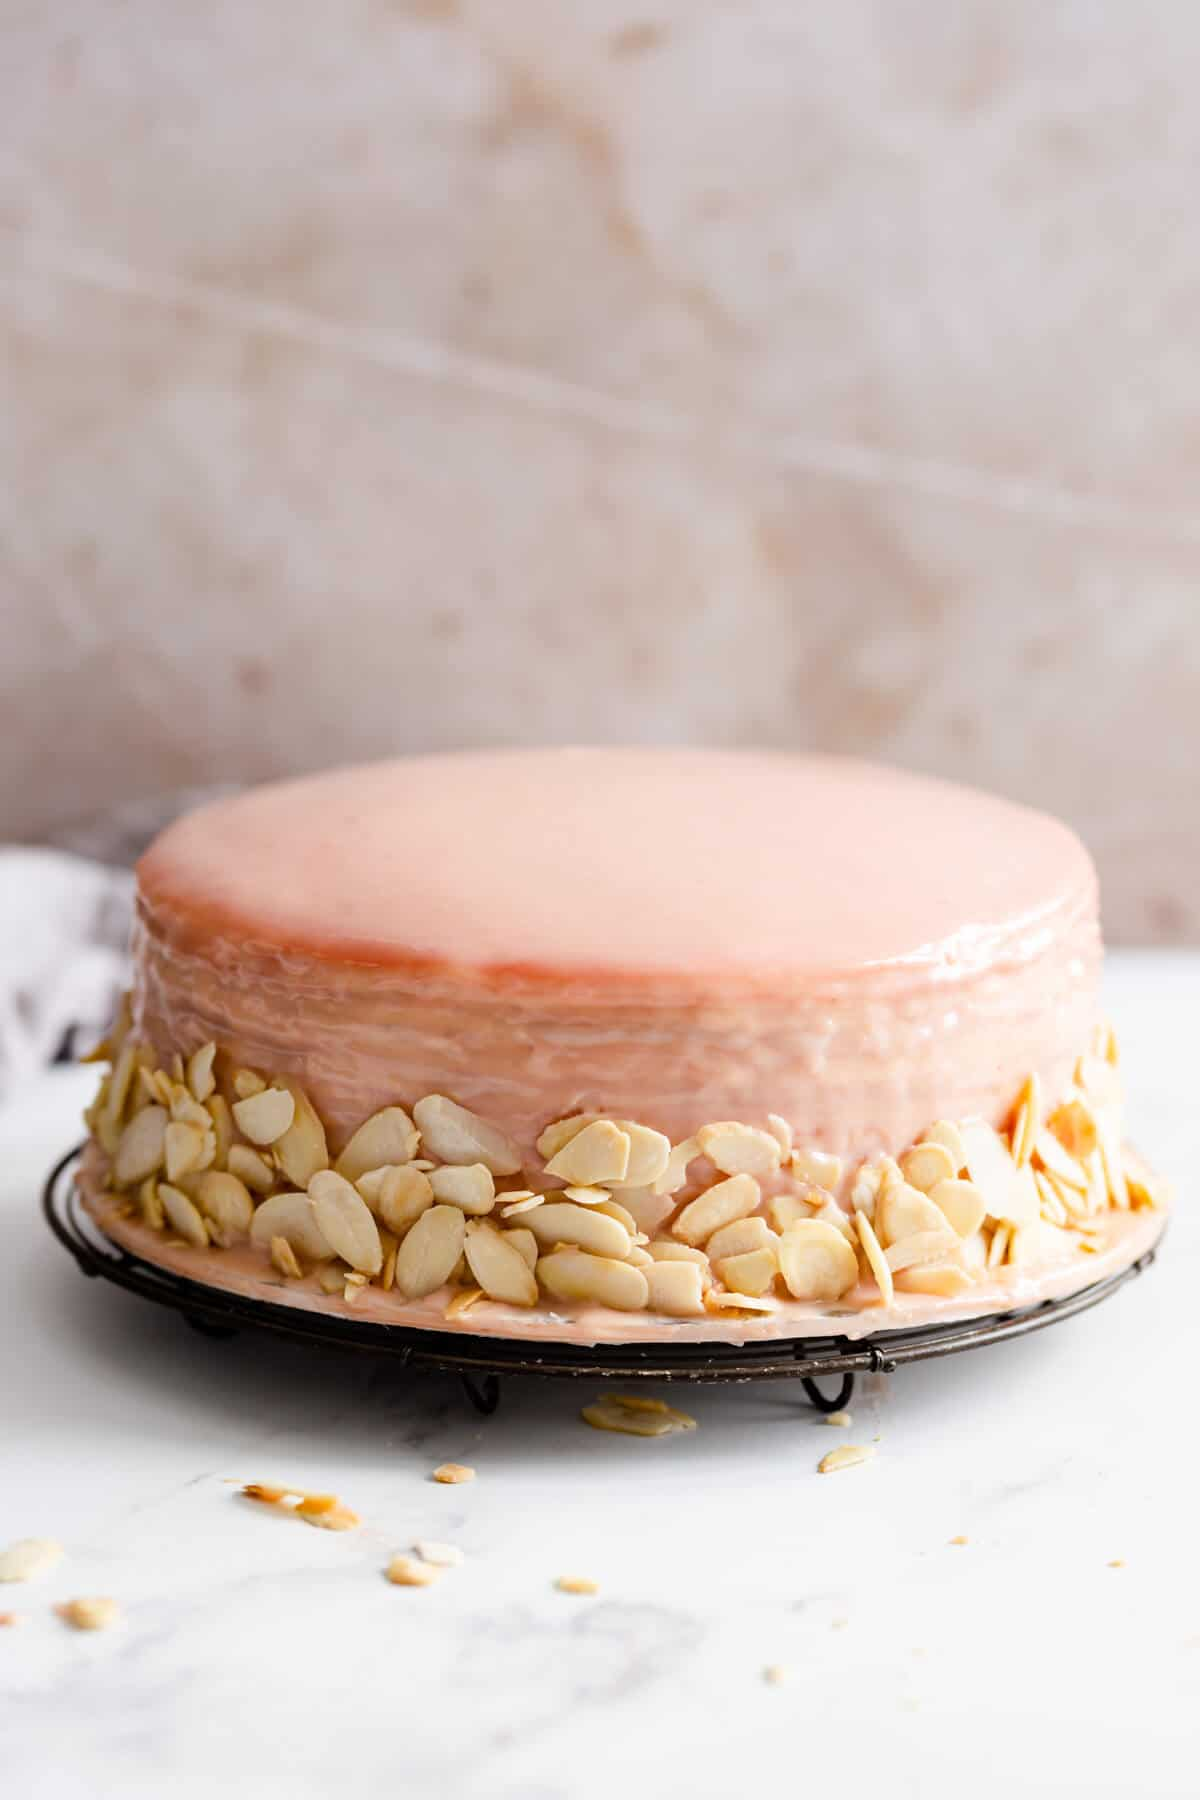 straight ahead angle showing crepe cake covered in strawberry ganache and flaked almonds on sides